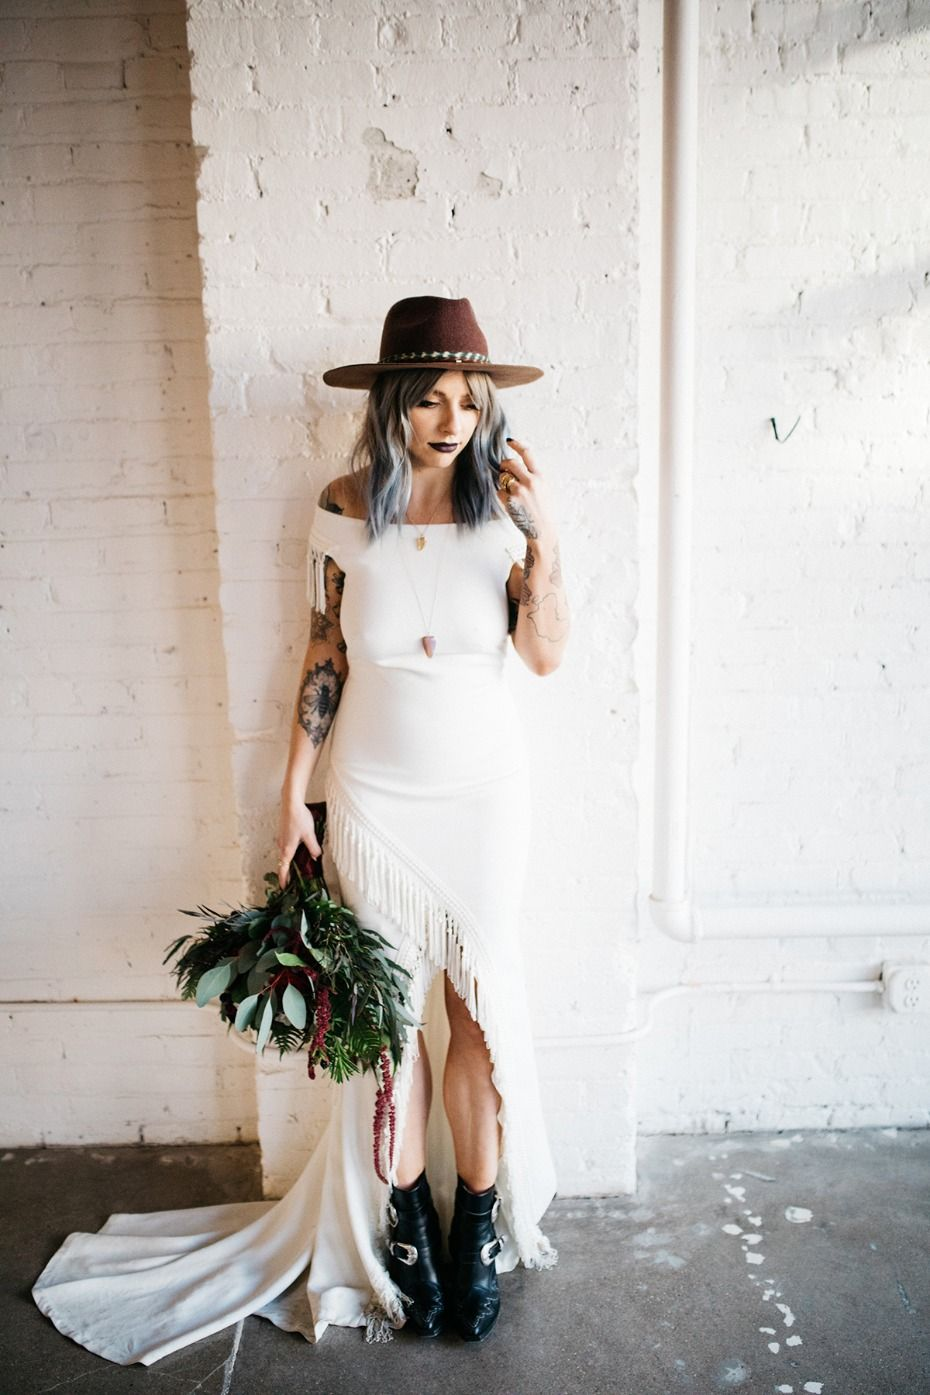 Now This Is How To Have An Edgy Glam Wedding Boho Wedding Shoes Wedding Shoes Boots Edgy Bridal